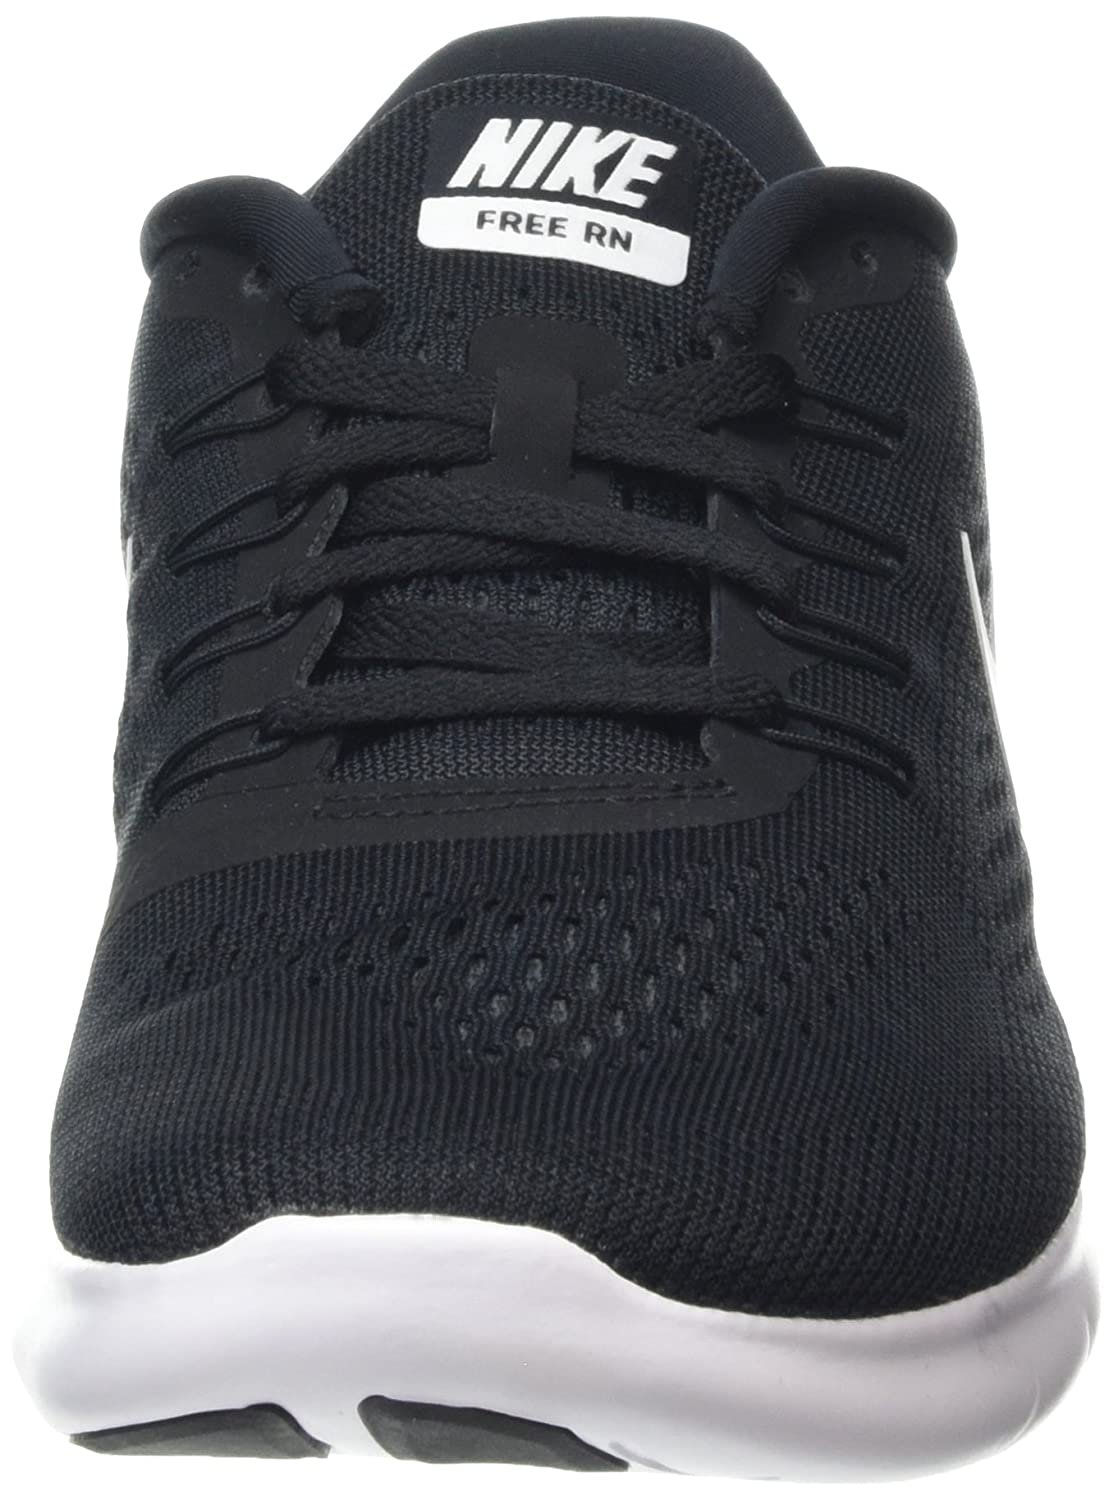 NIKE Men's Free RN Running Shoe B0147SK046 6.5 D(M) US|Black/Anthracite/White